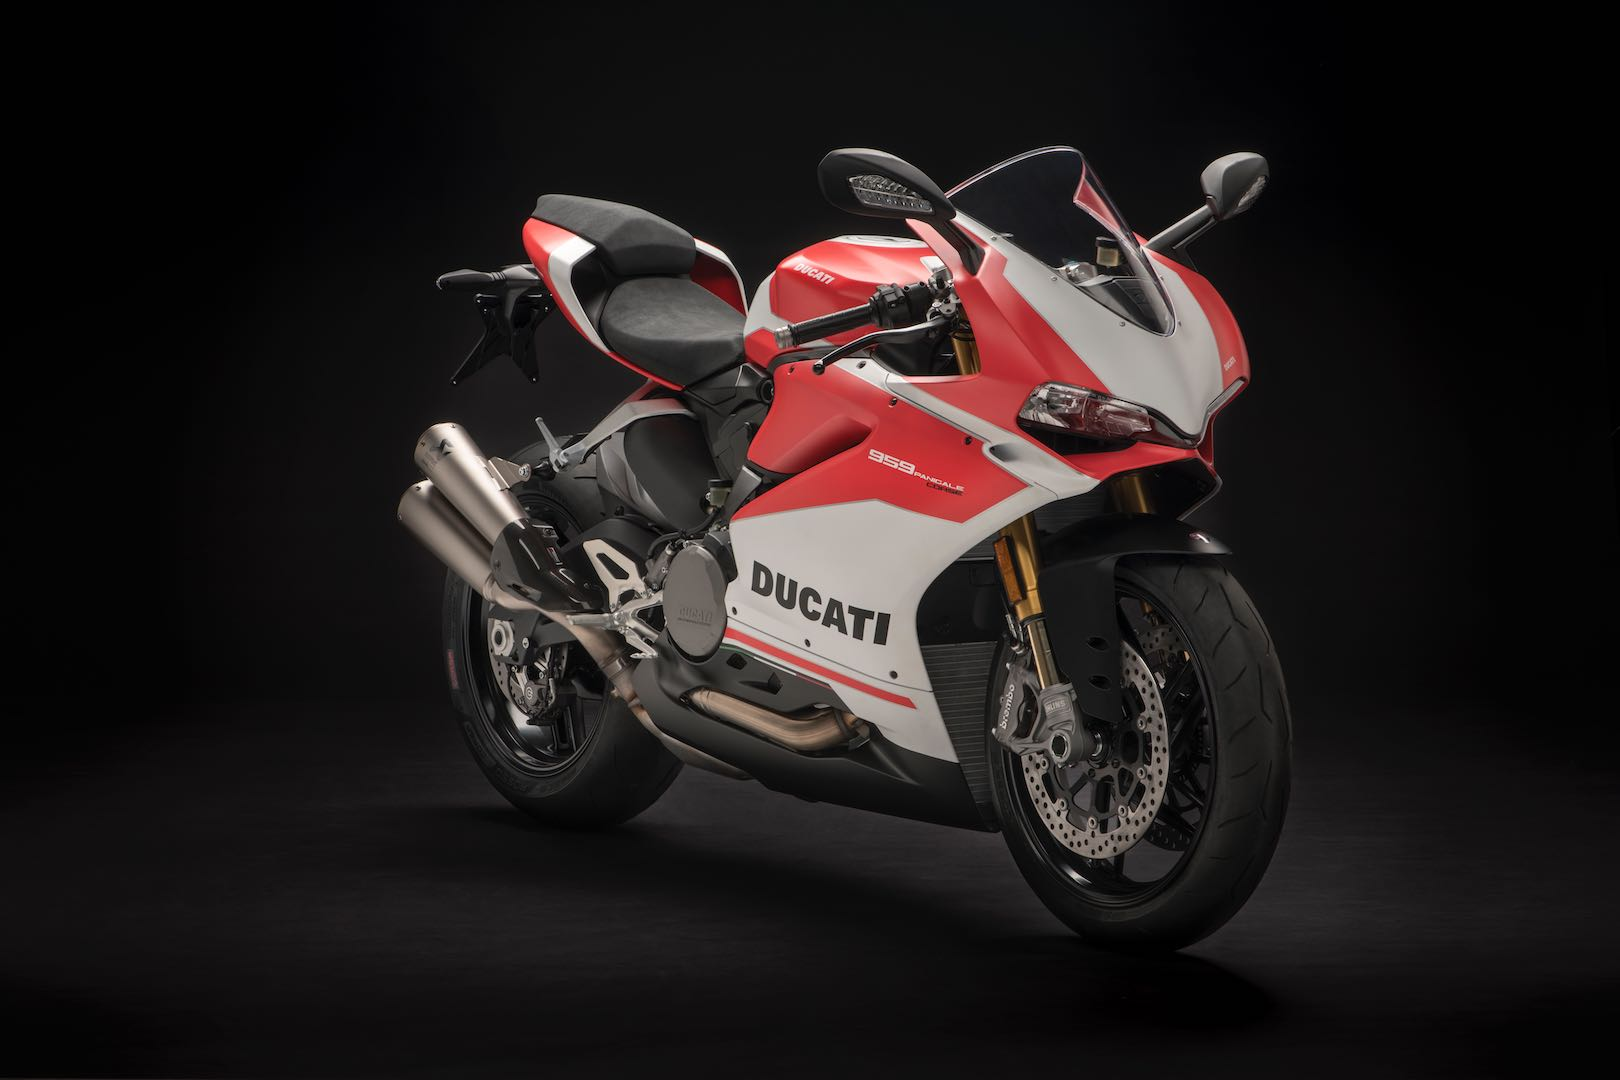 2018 ducati prices panigale v4 959 corse multistrada 1260. Black Bedroom Furniture Sets. Home Design Ideas